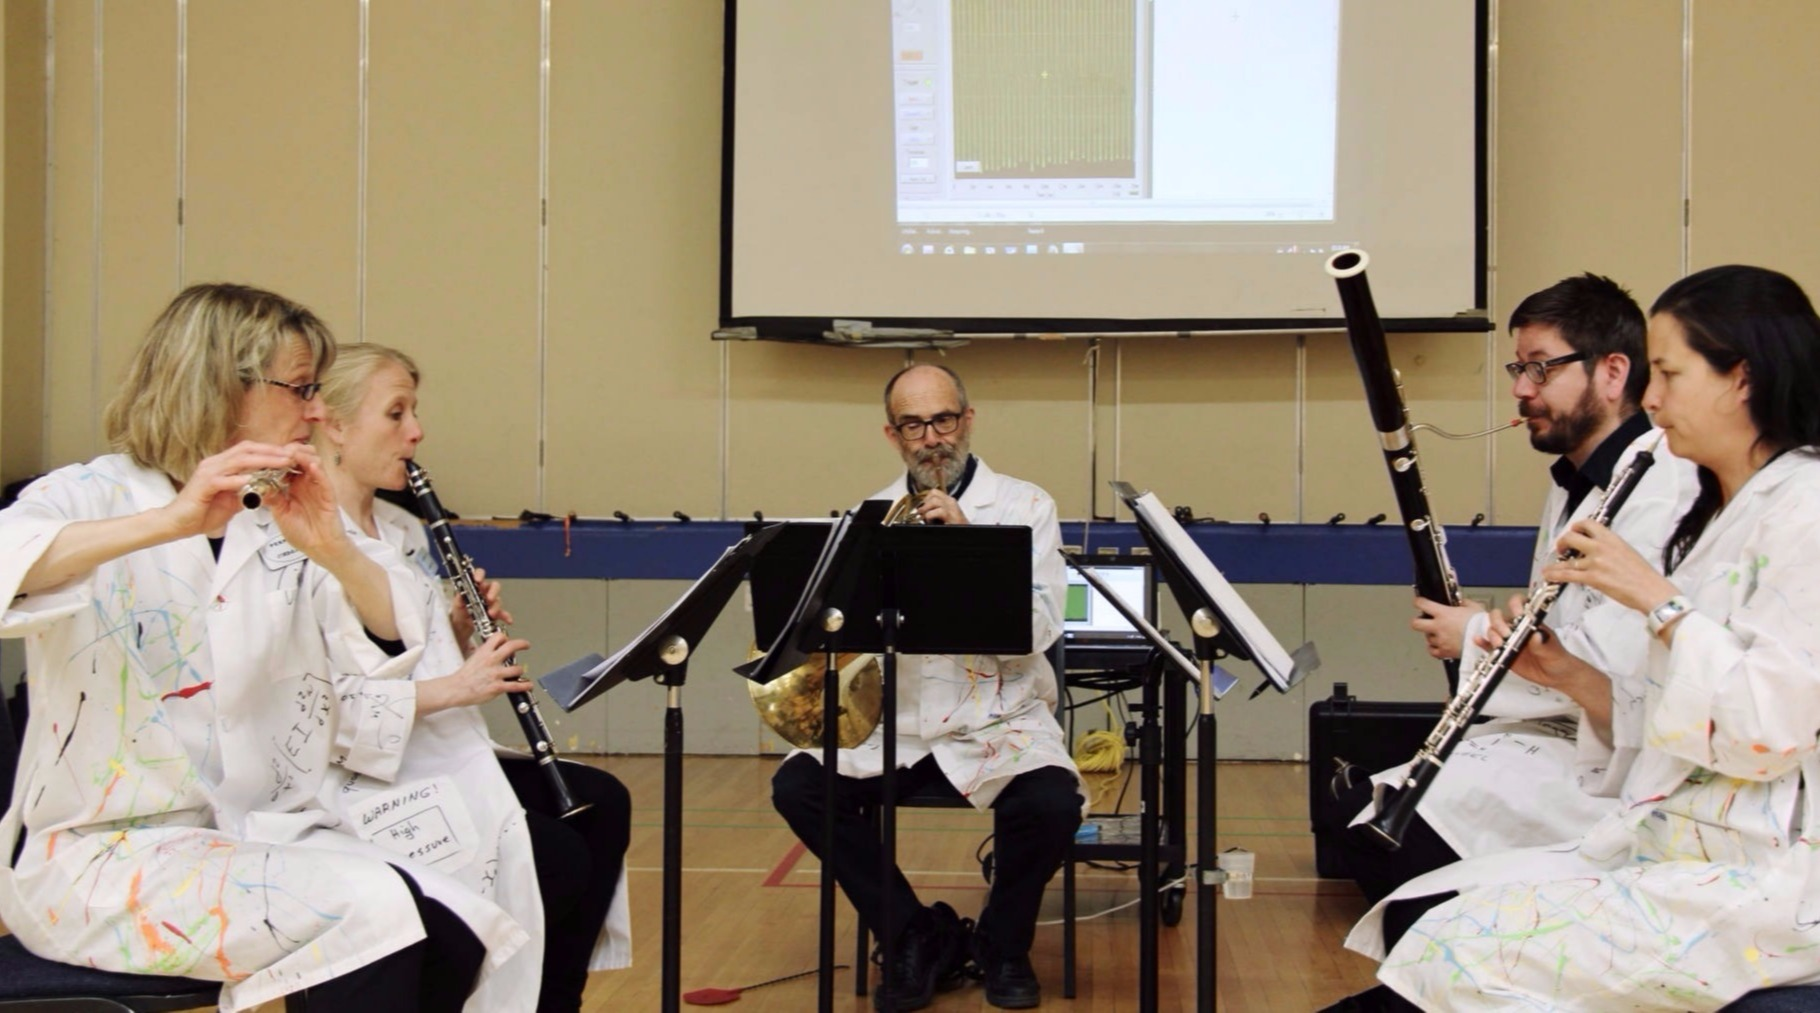 Perfect Cadence (in Lab Coats) during a school performance